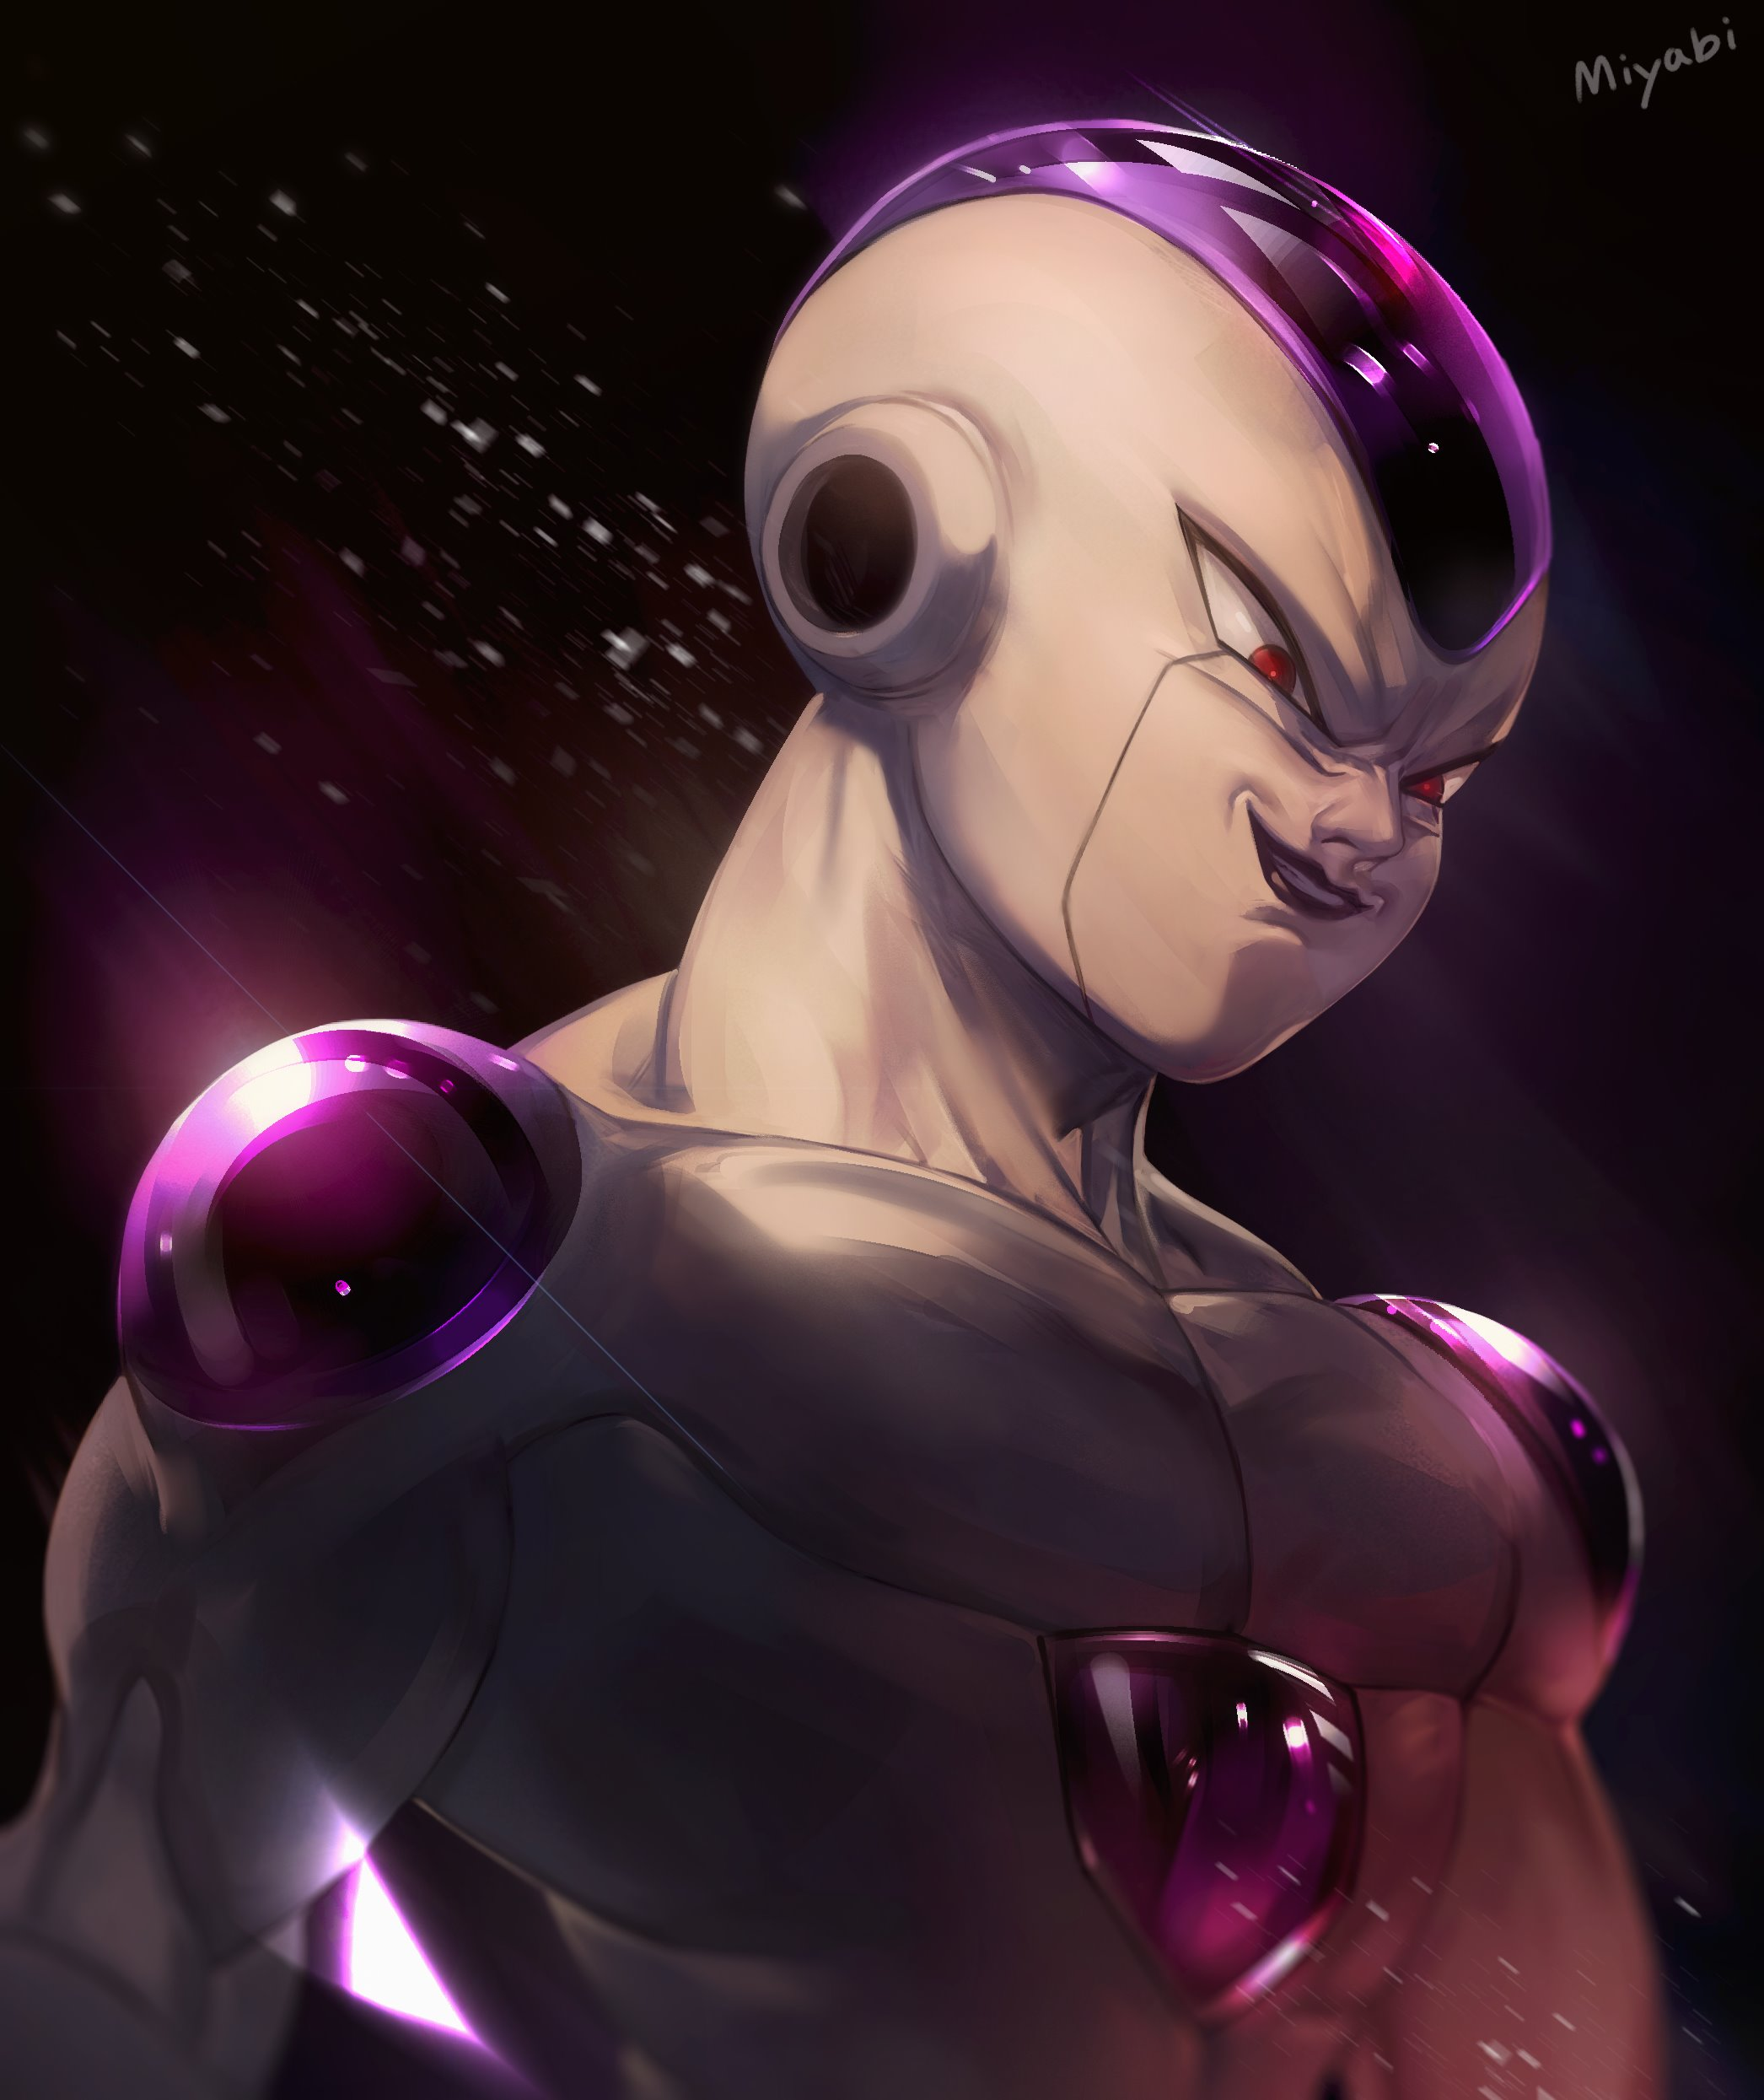 Images découvertes [Fanarts Dragon Ball] - Page 6 DwYpDuPU0AAGQjz?format=jpg&name=4096x4096